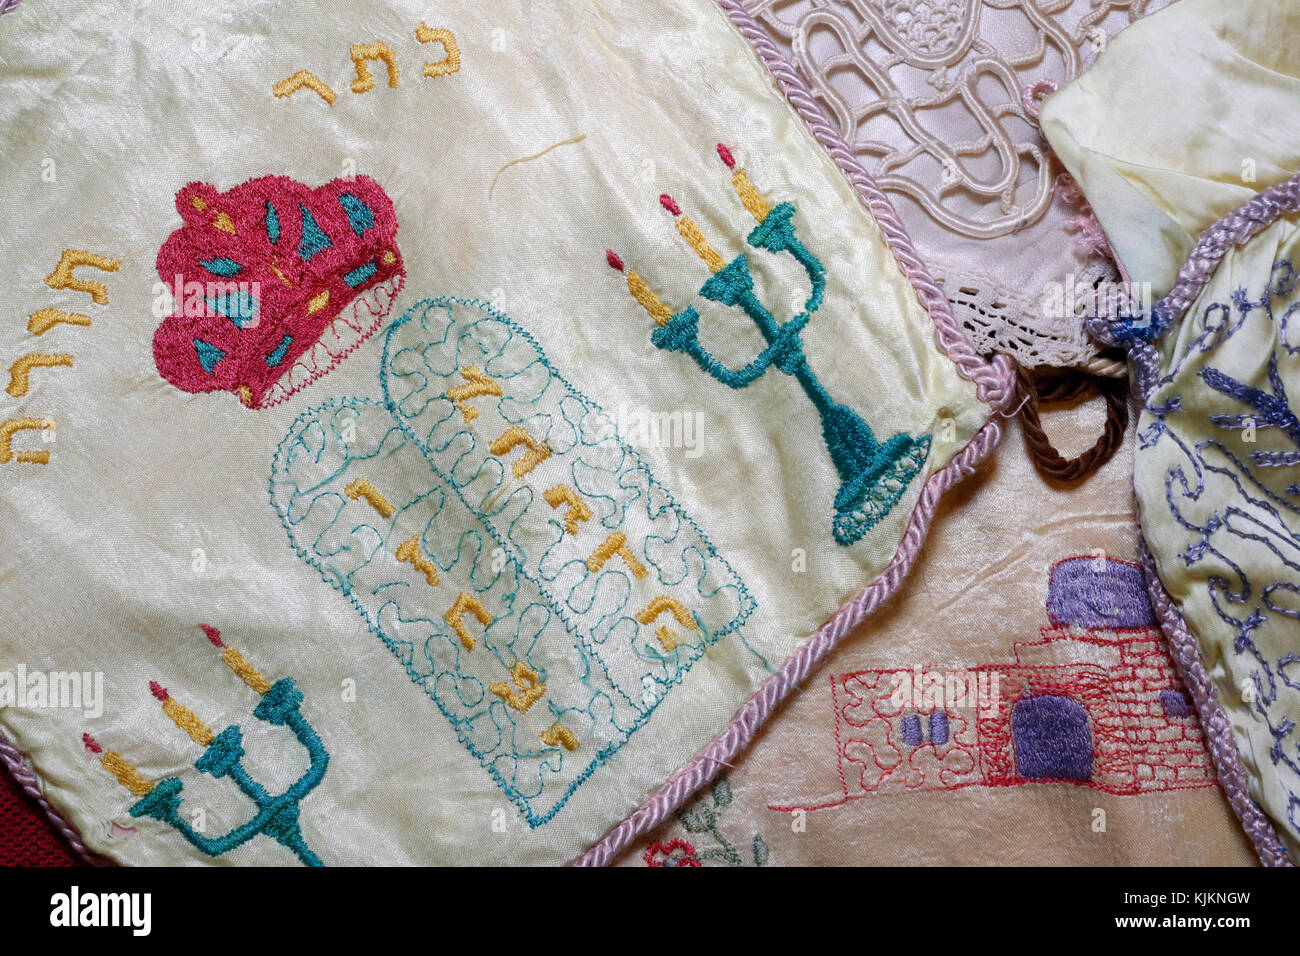 Old embroidered Talilit matching bags.  Ten commandments.  Switzerland. - Stock Image